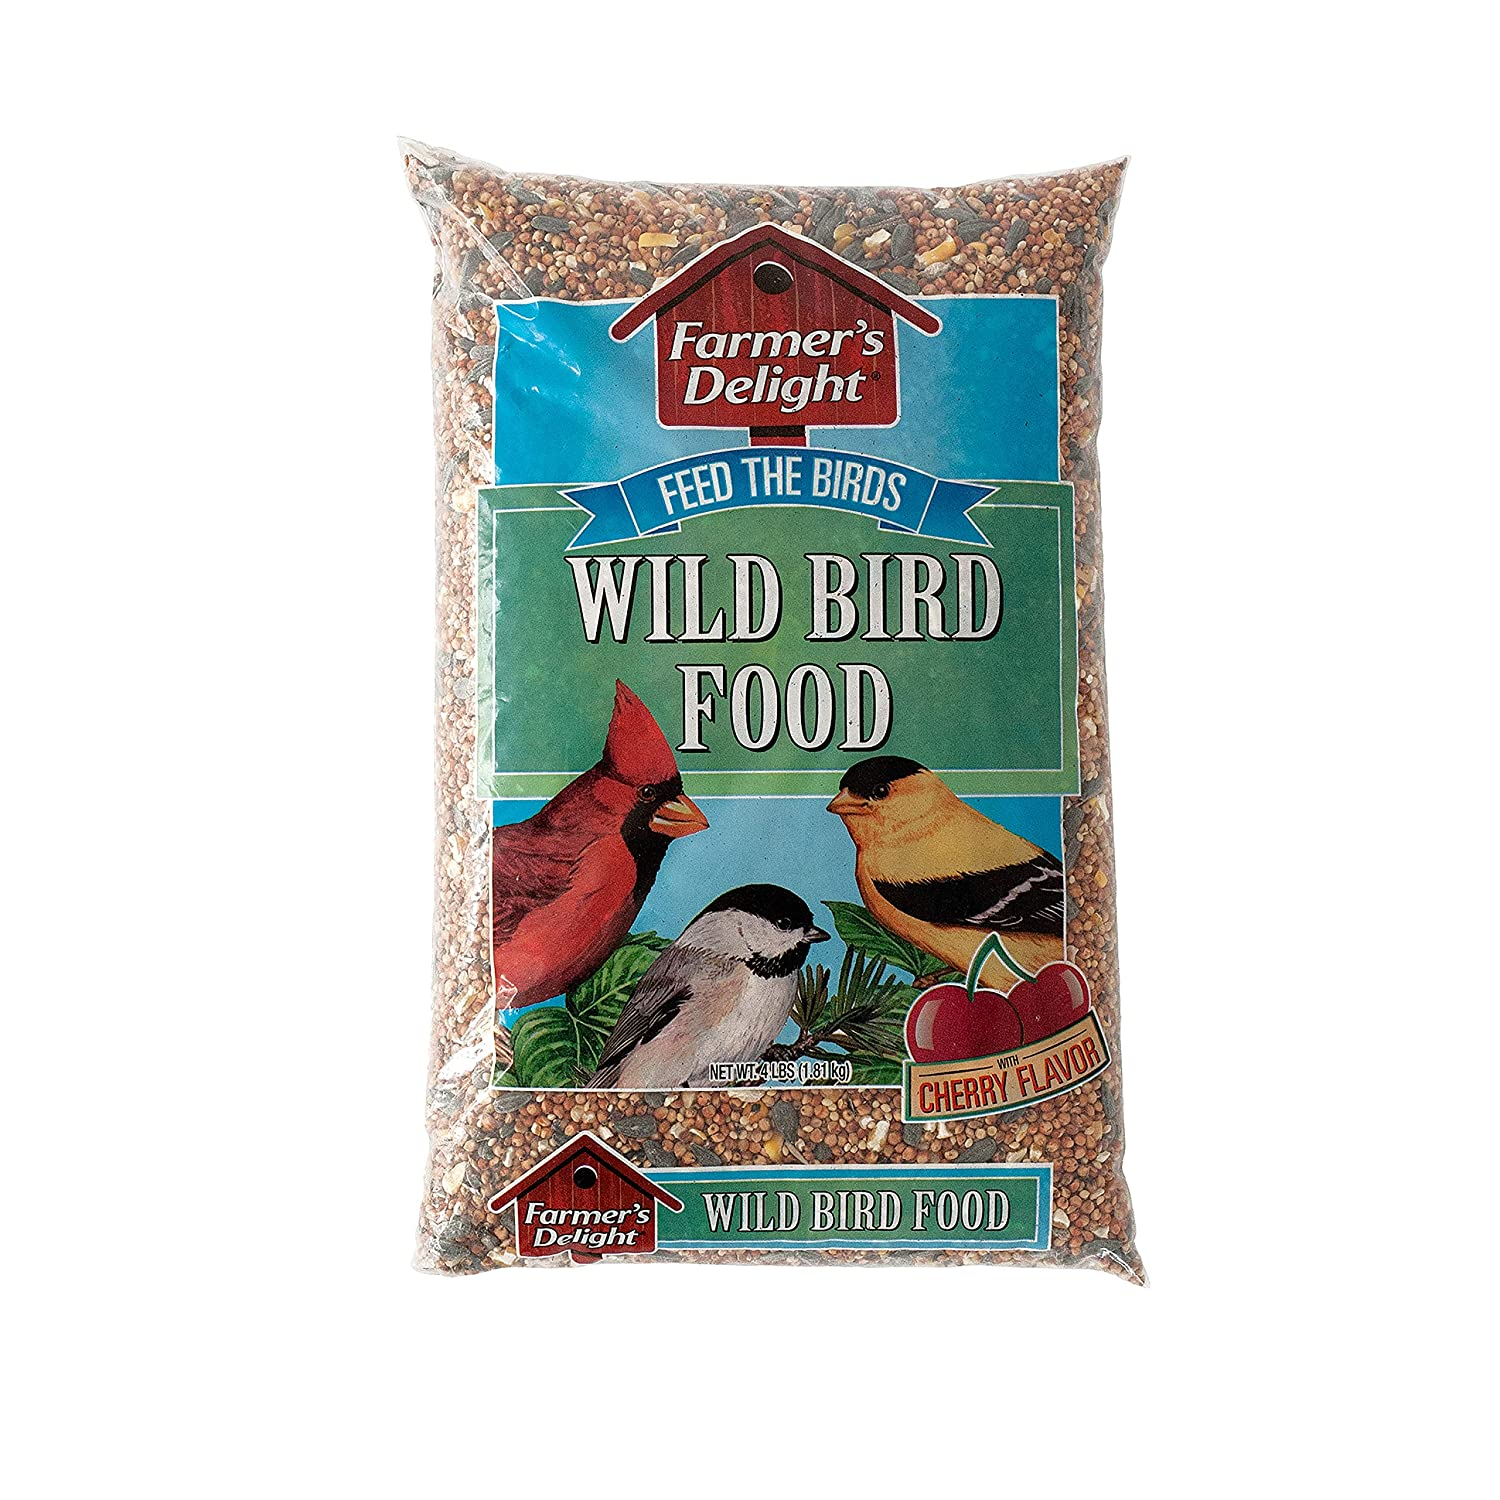 B0030ZXB8A Wagner's 53001 Farmer's Delight Wild Bird Food With Cherry Flavor, 4-Pound Bag 91mK9pWRP2BL